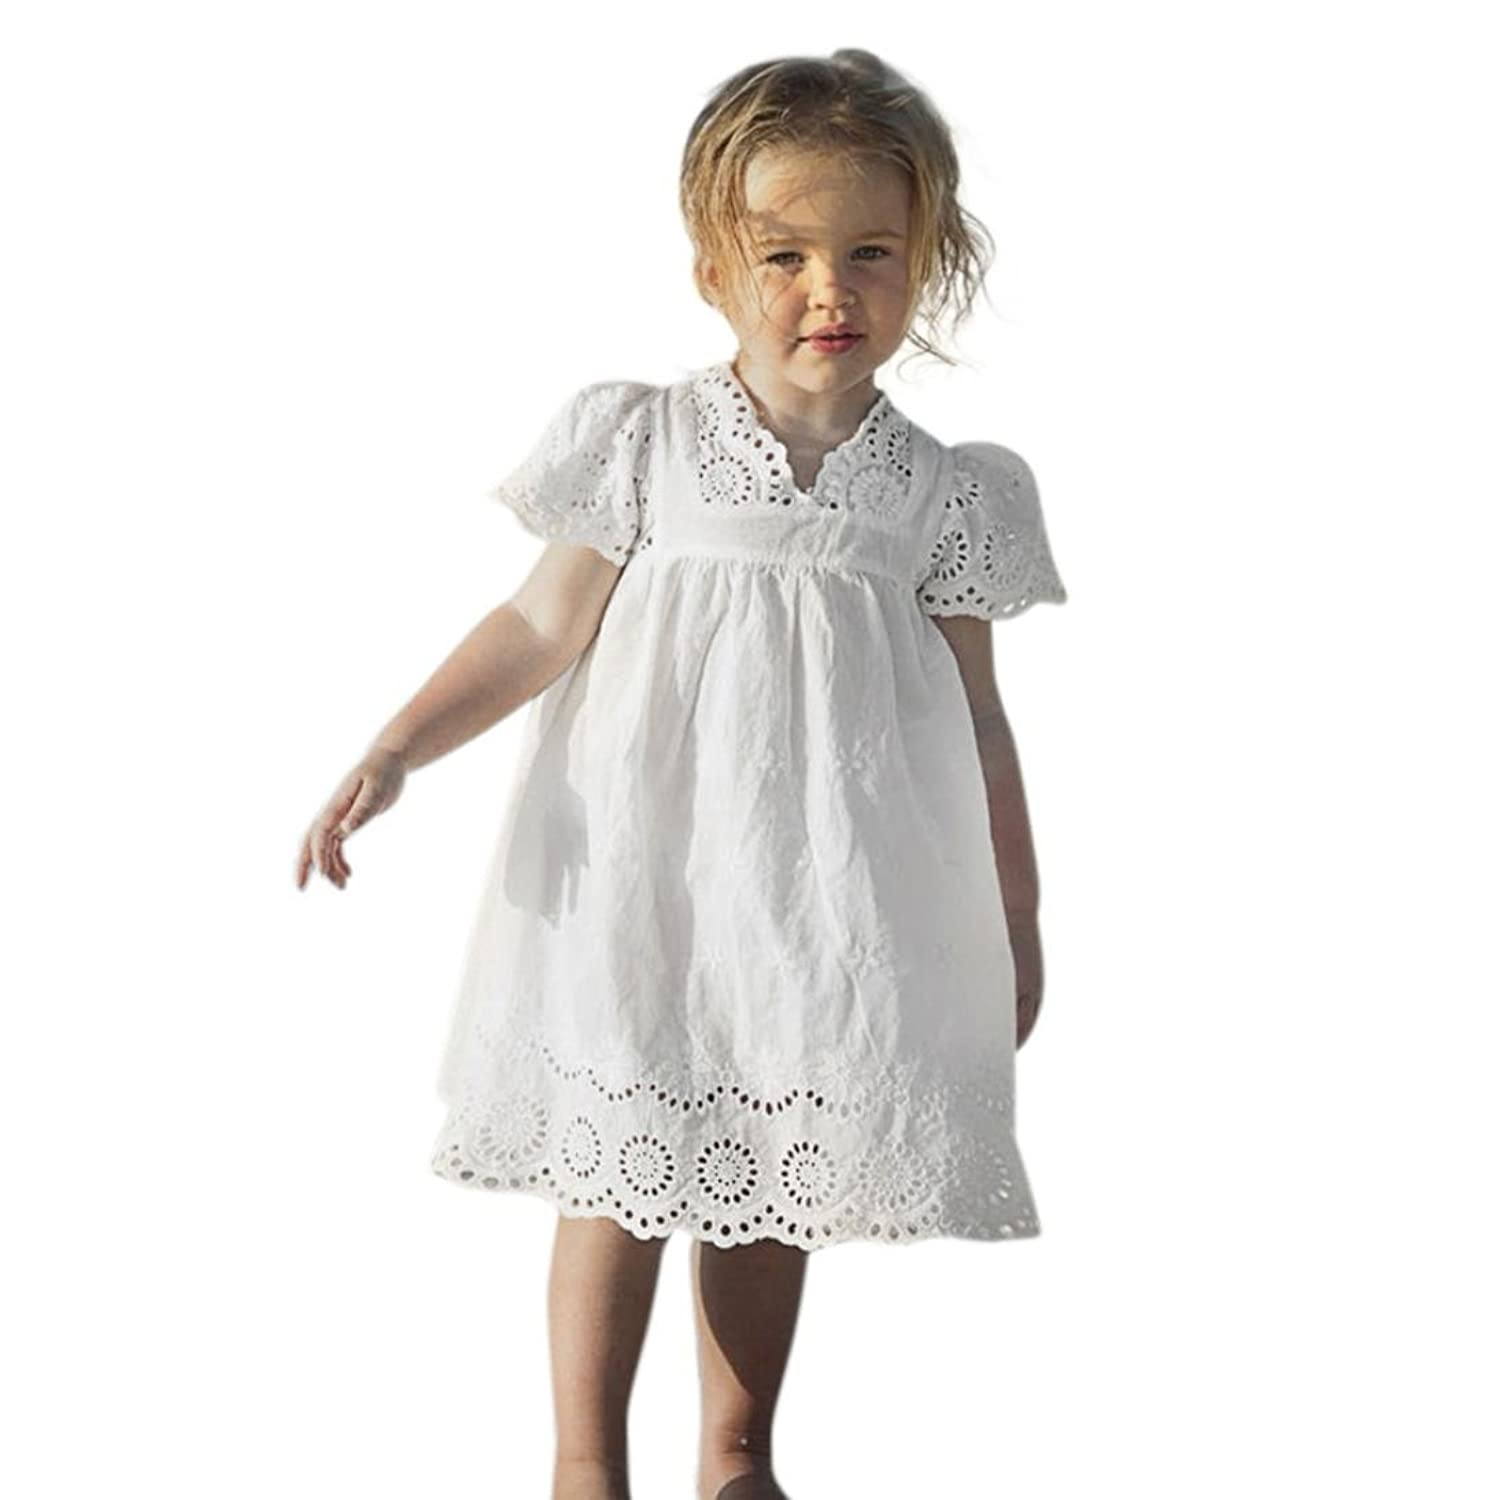 1e3ad880d9caf Mounter Robe Bébé